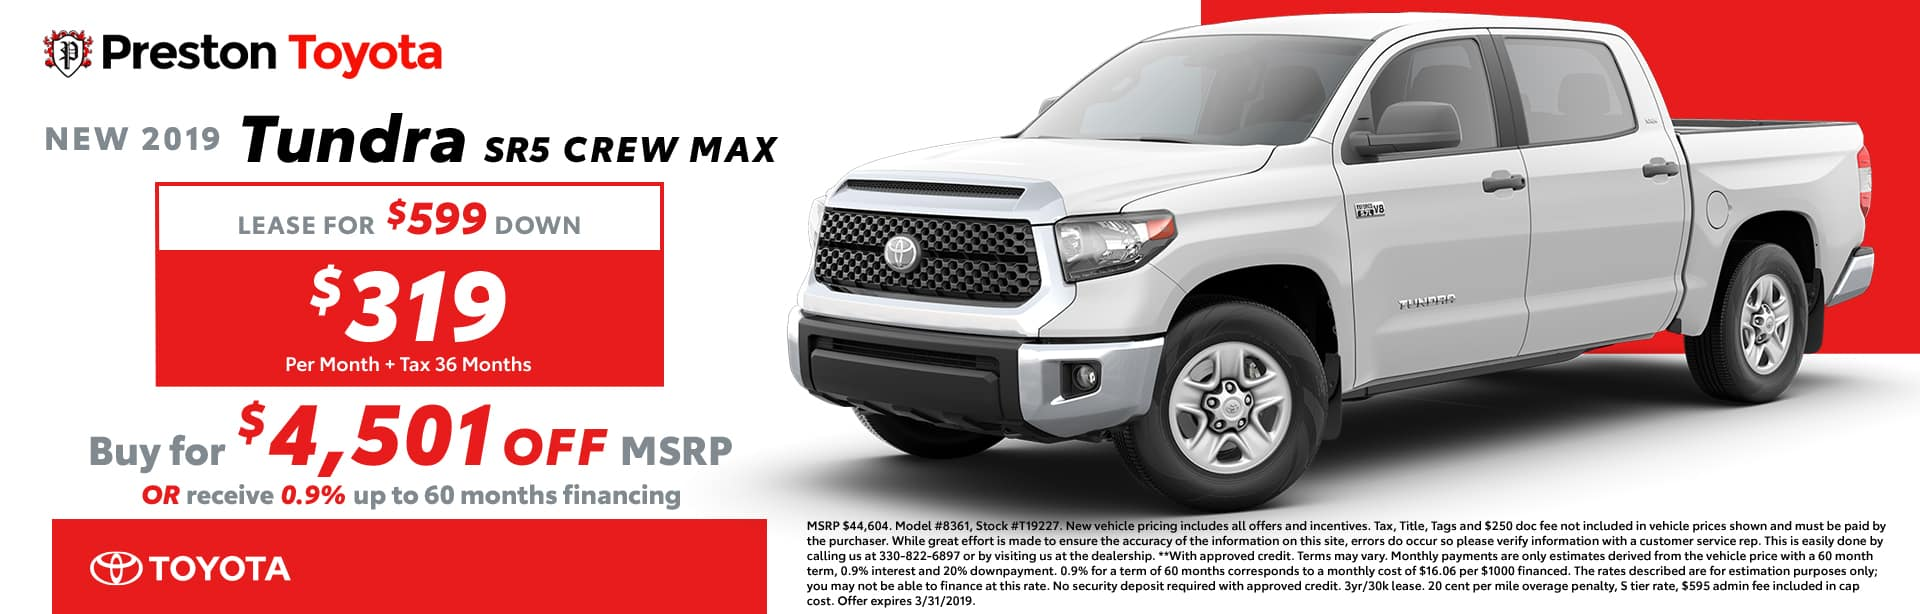 March Special on the 2019 Toyota Tundra